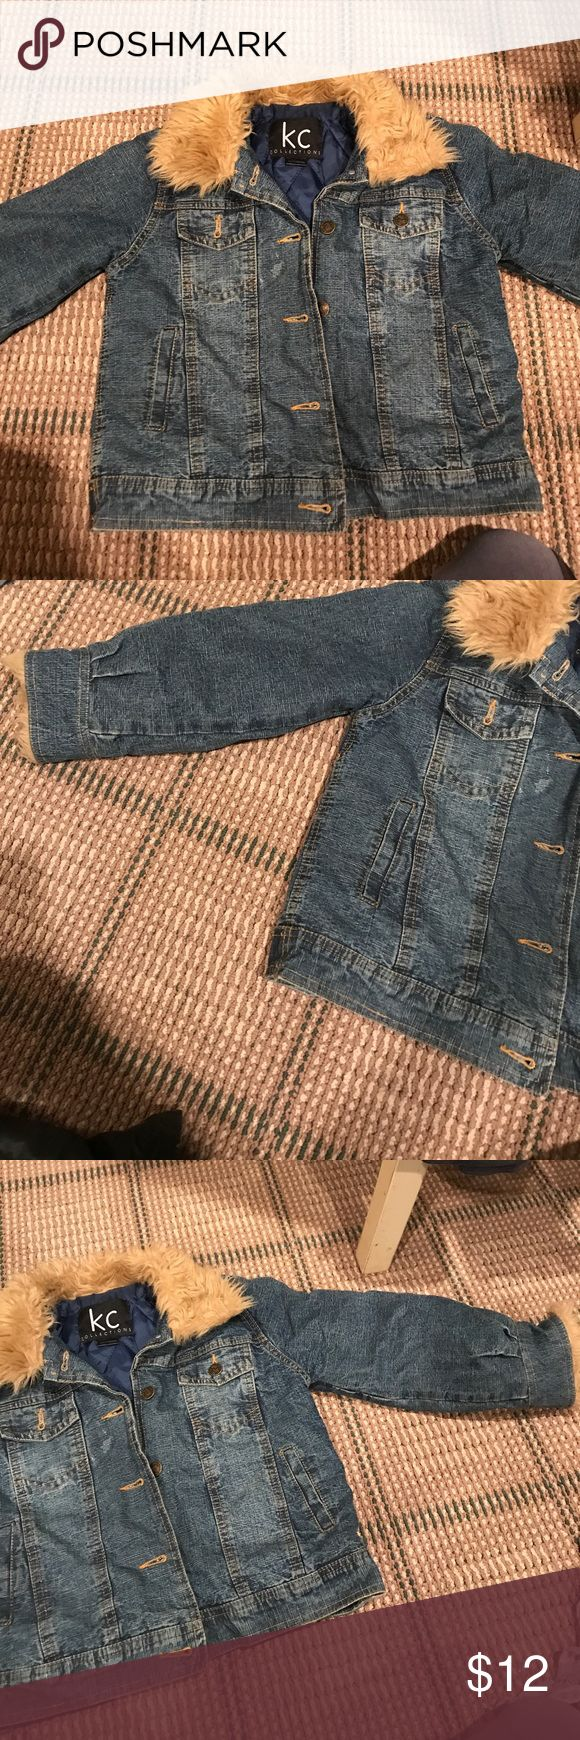 Kids size medium denim jacket with fur hood Kids size medium denim jacket with fur hood. Very good condition. Only worn once Jackets & Coats Jean Jackets